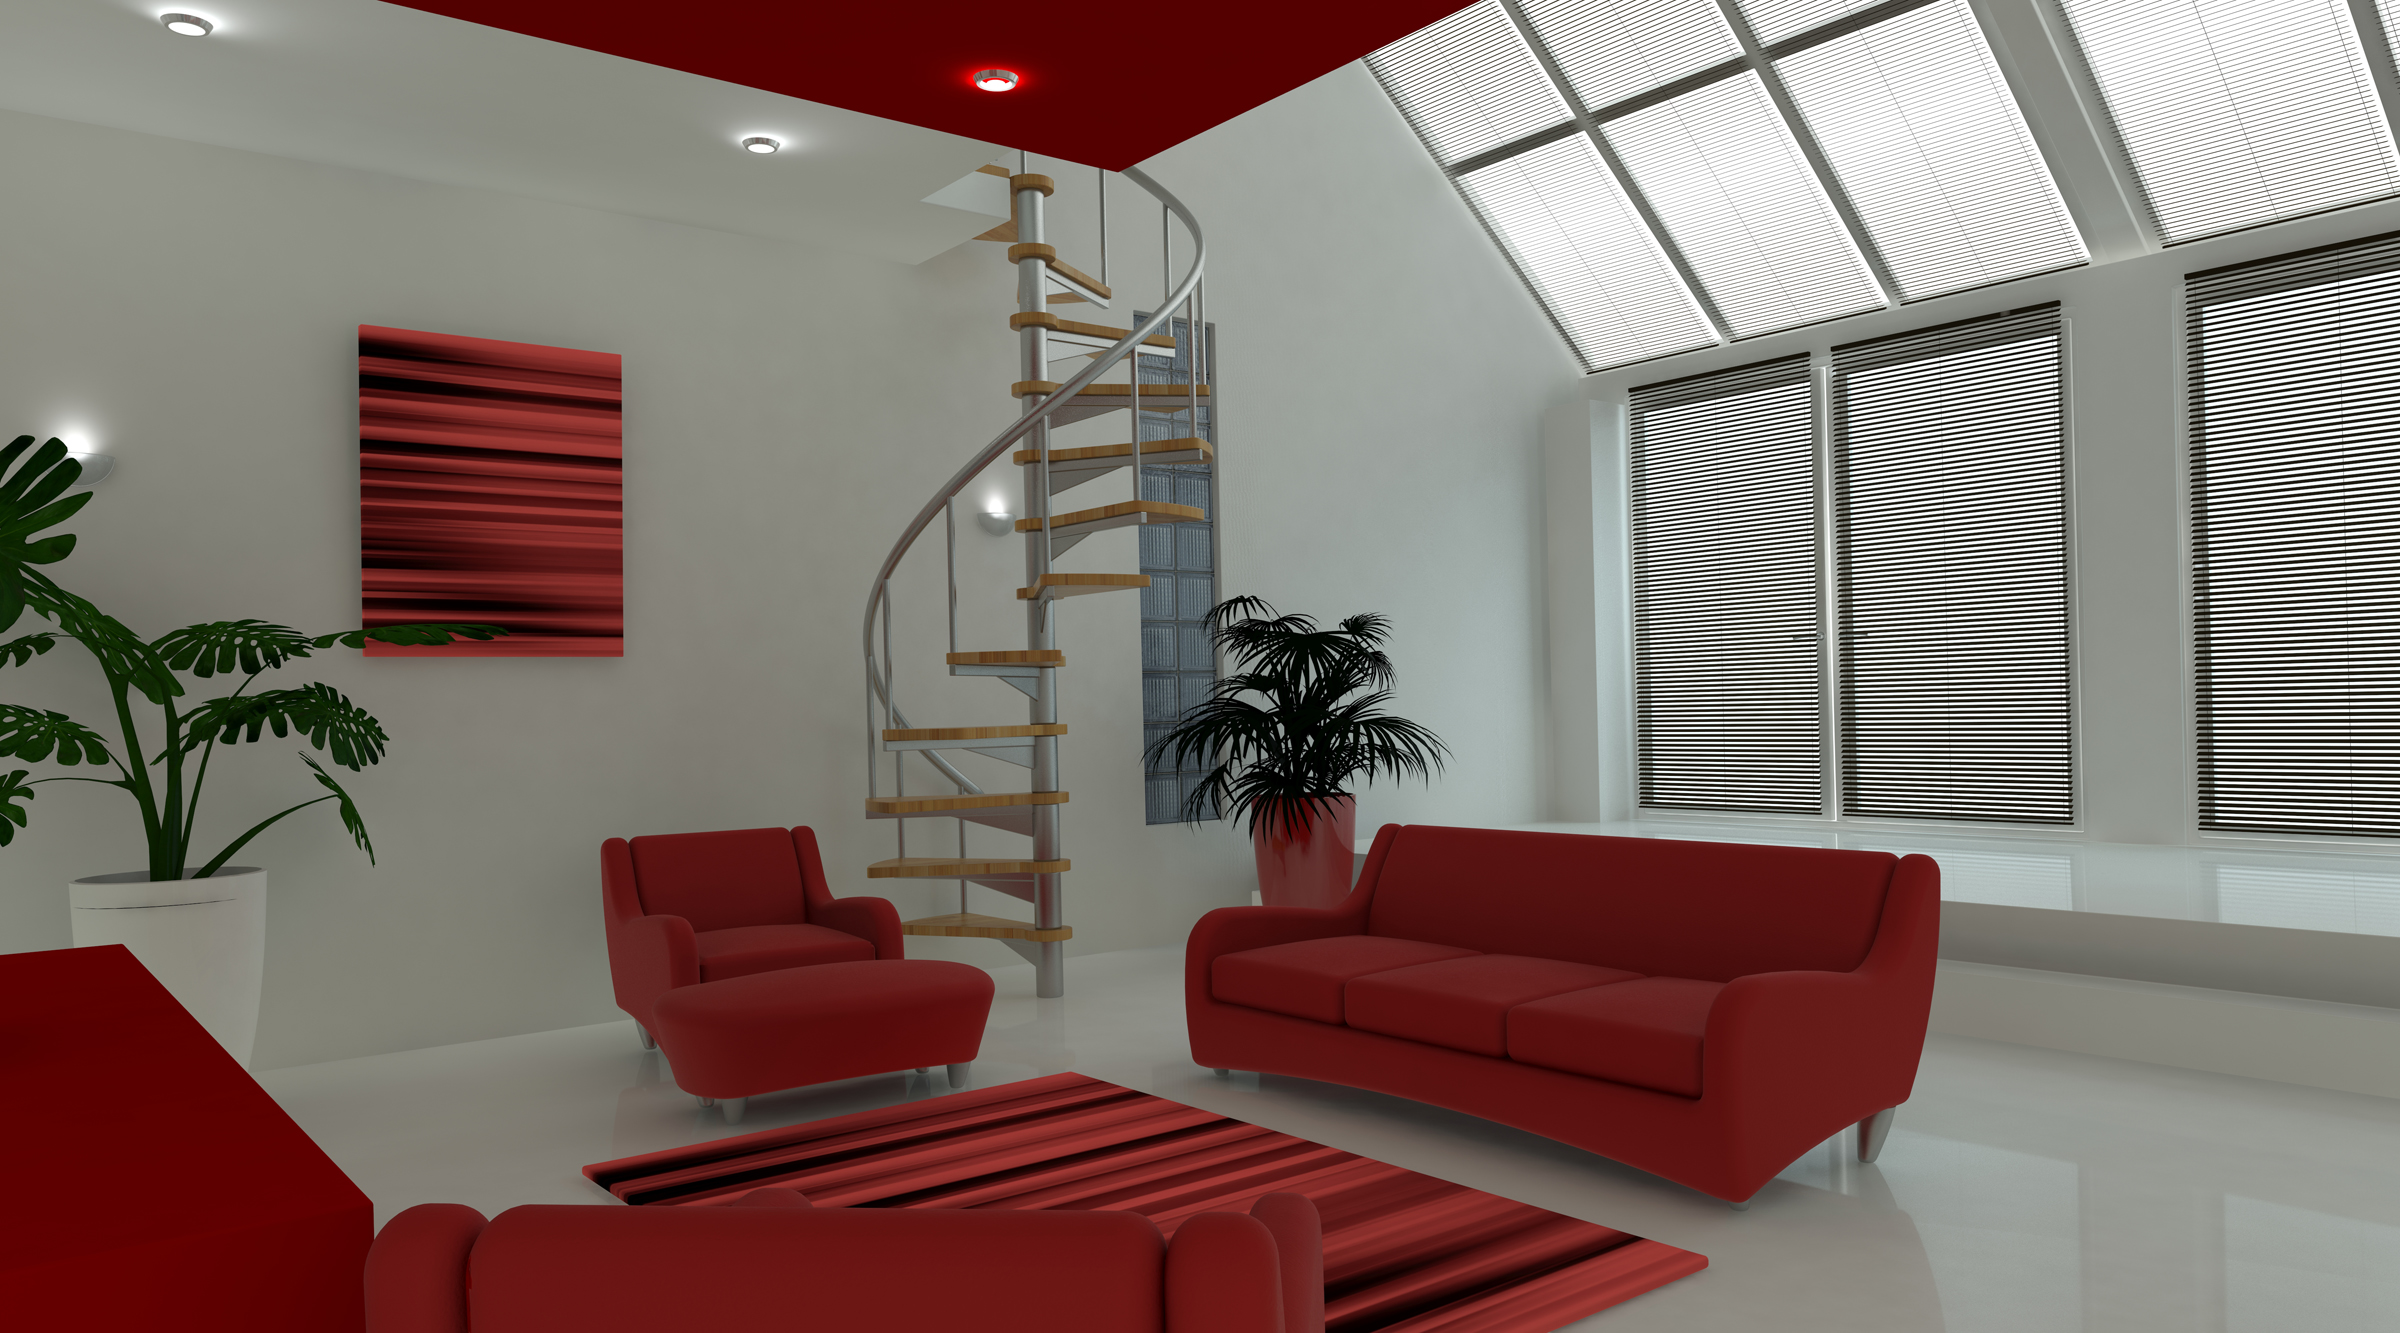 3d design of a room with stairs interior design marbella interior